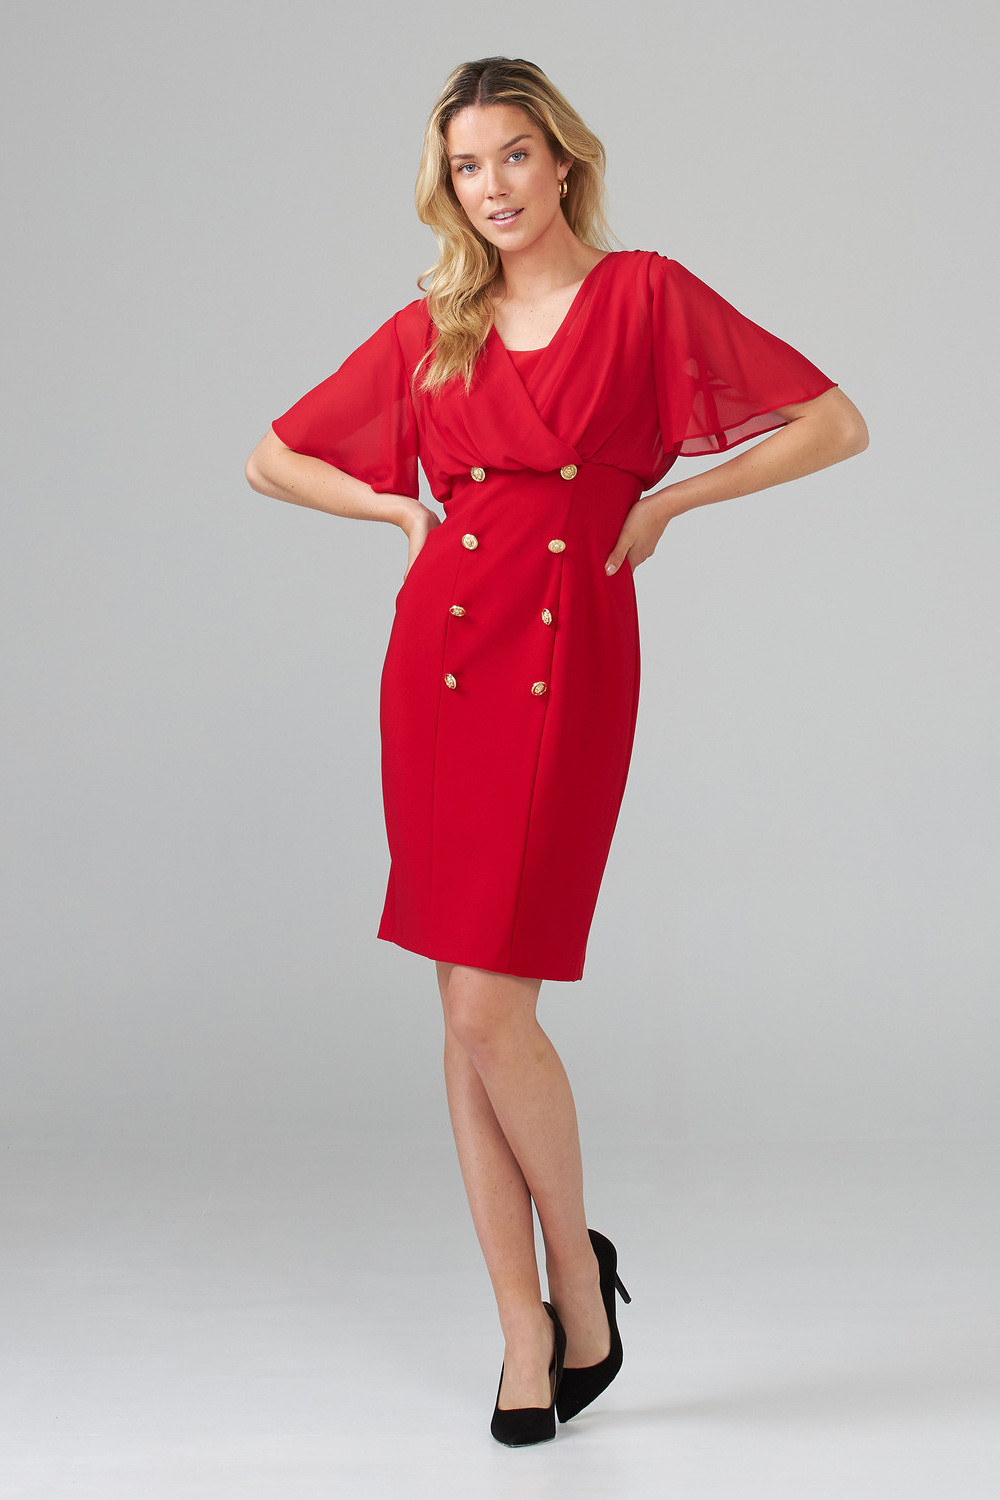 Joseph Ribkoff Robes Rouge A Levres 173 Style 201007